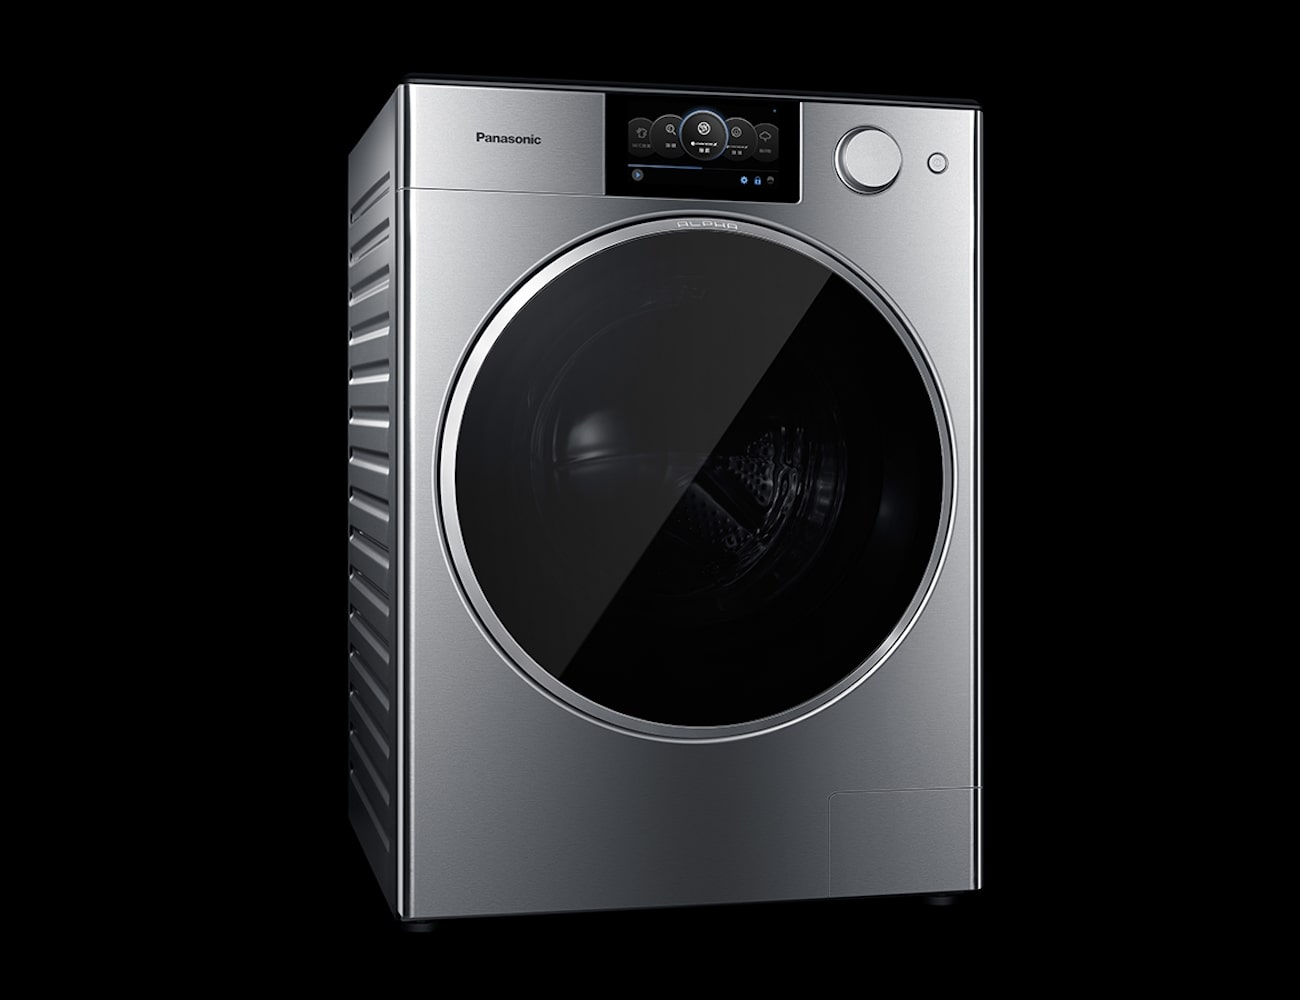 Panasonic Alpha Luxury Washing Machine  U00bb Gadget Flow